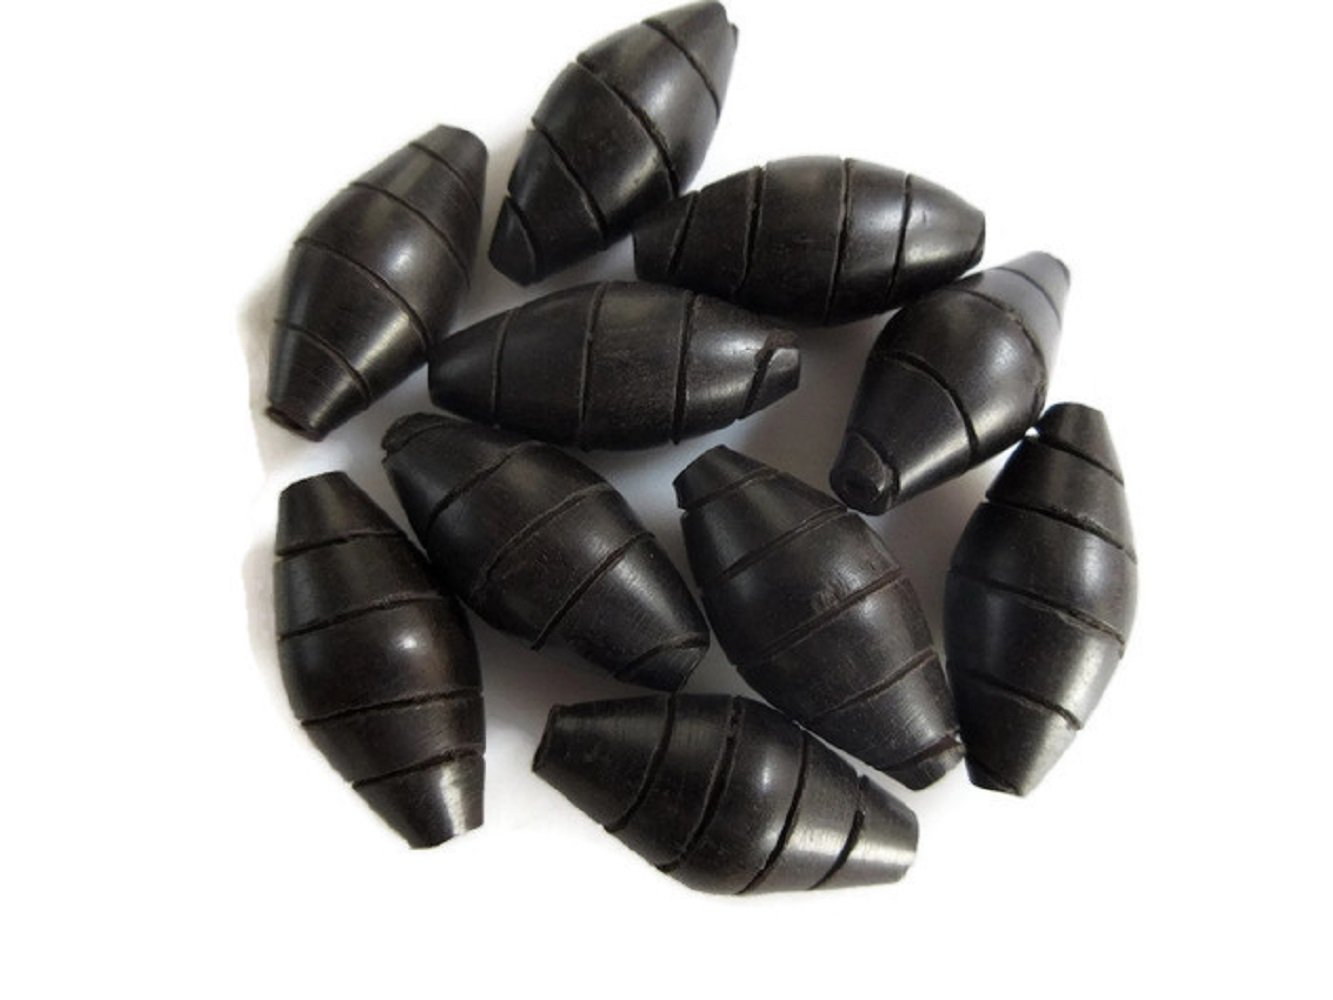 100 Pieces Drum Shaped Hand Carved Natural Ebony Wood Beads, Smooth Wooden Supplies Jewelry, GDS1045/13